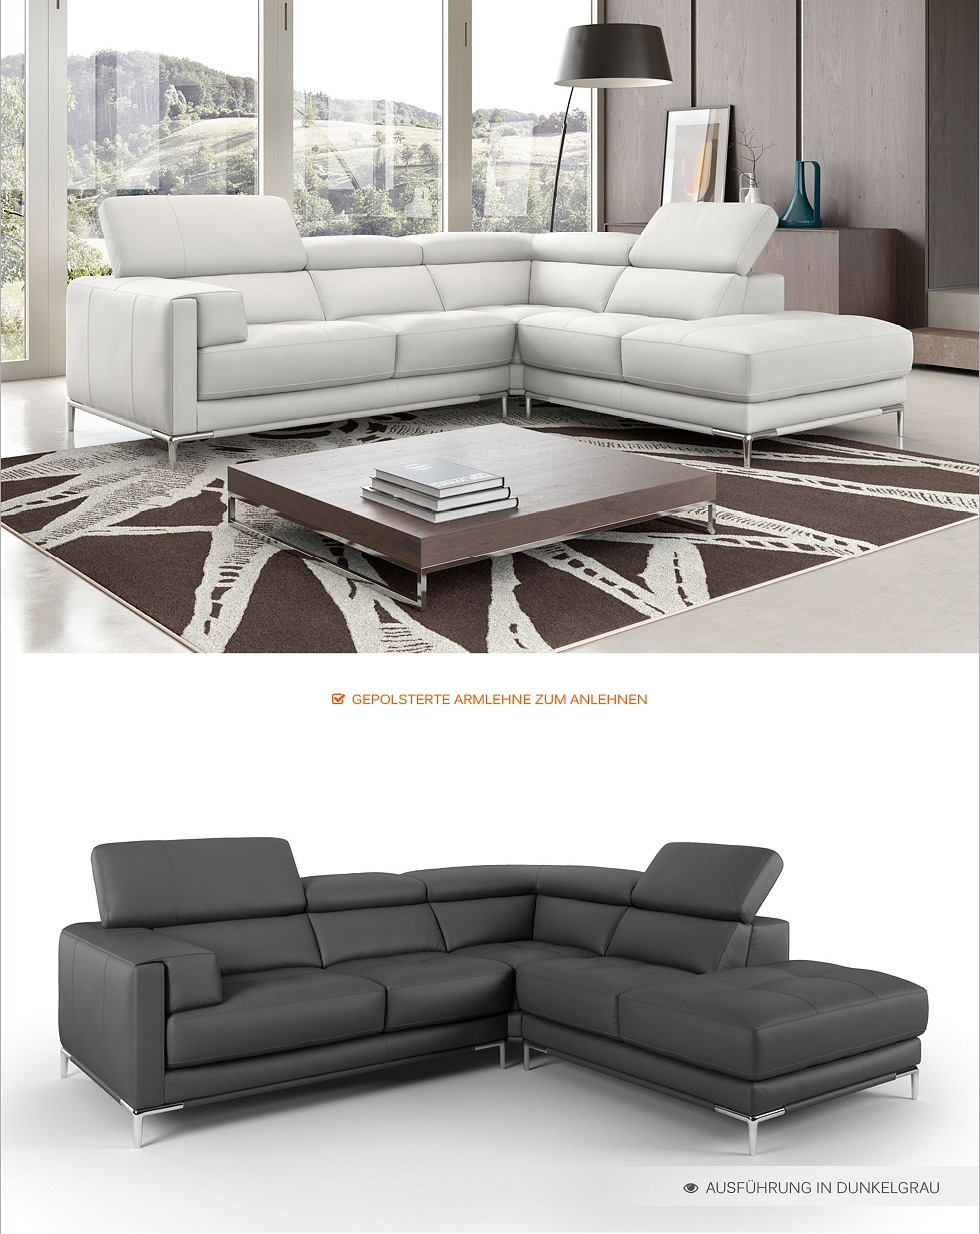 designer couch design sofa echt leder ecksofa eckcouch garnitur sofalandschaft ebay. Black Bedroom Furniture Sets. Home Design Ideas